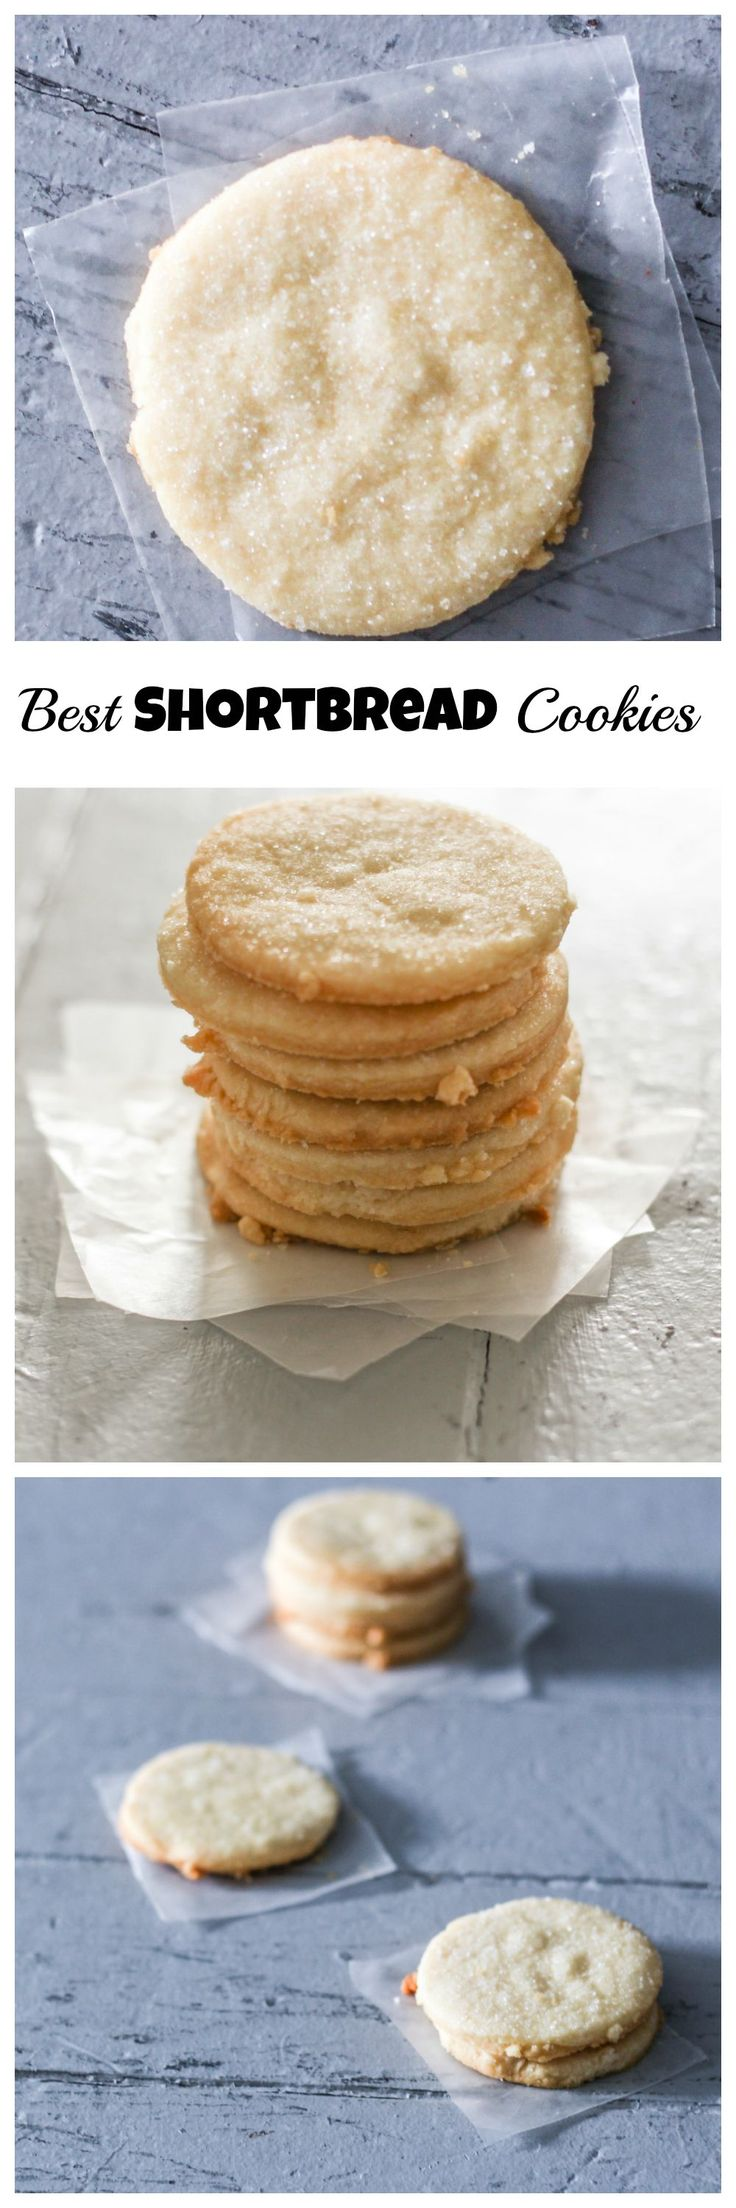 Best Shortbread Cookies! Perfect for Holiday cookie exchanges.